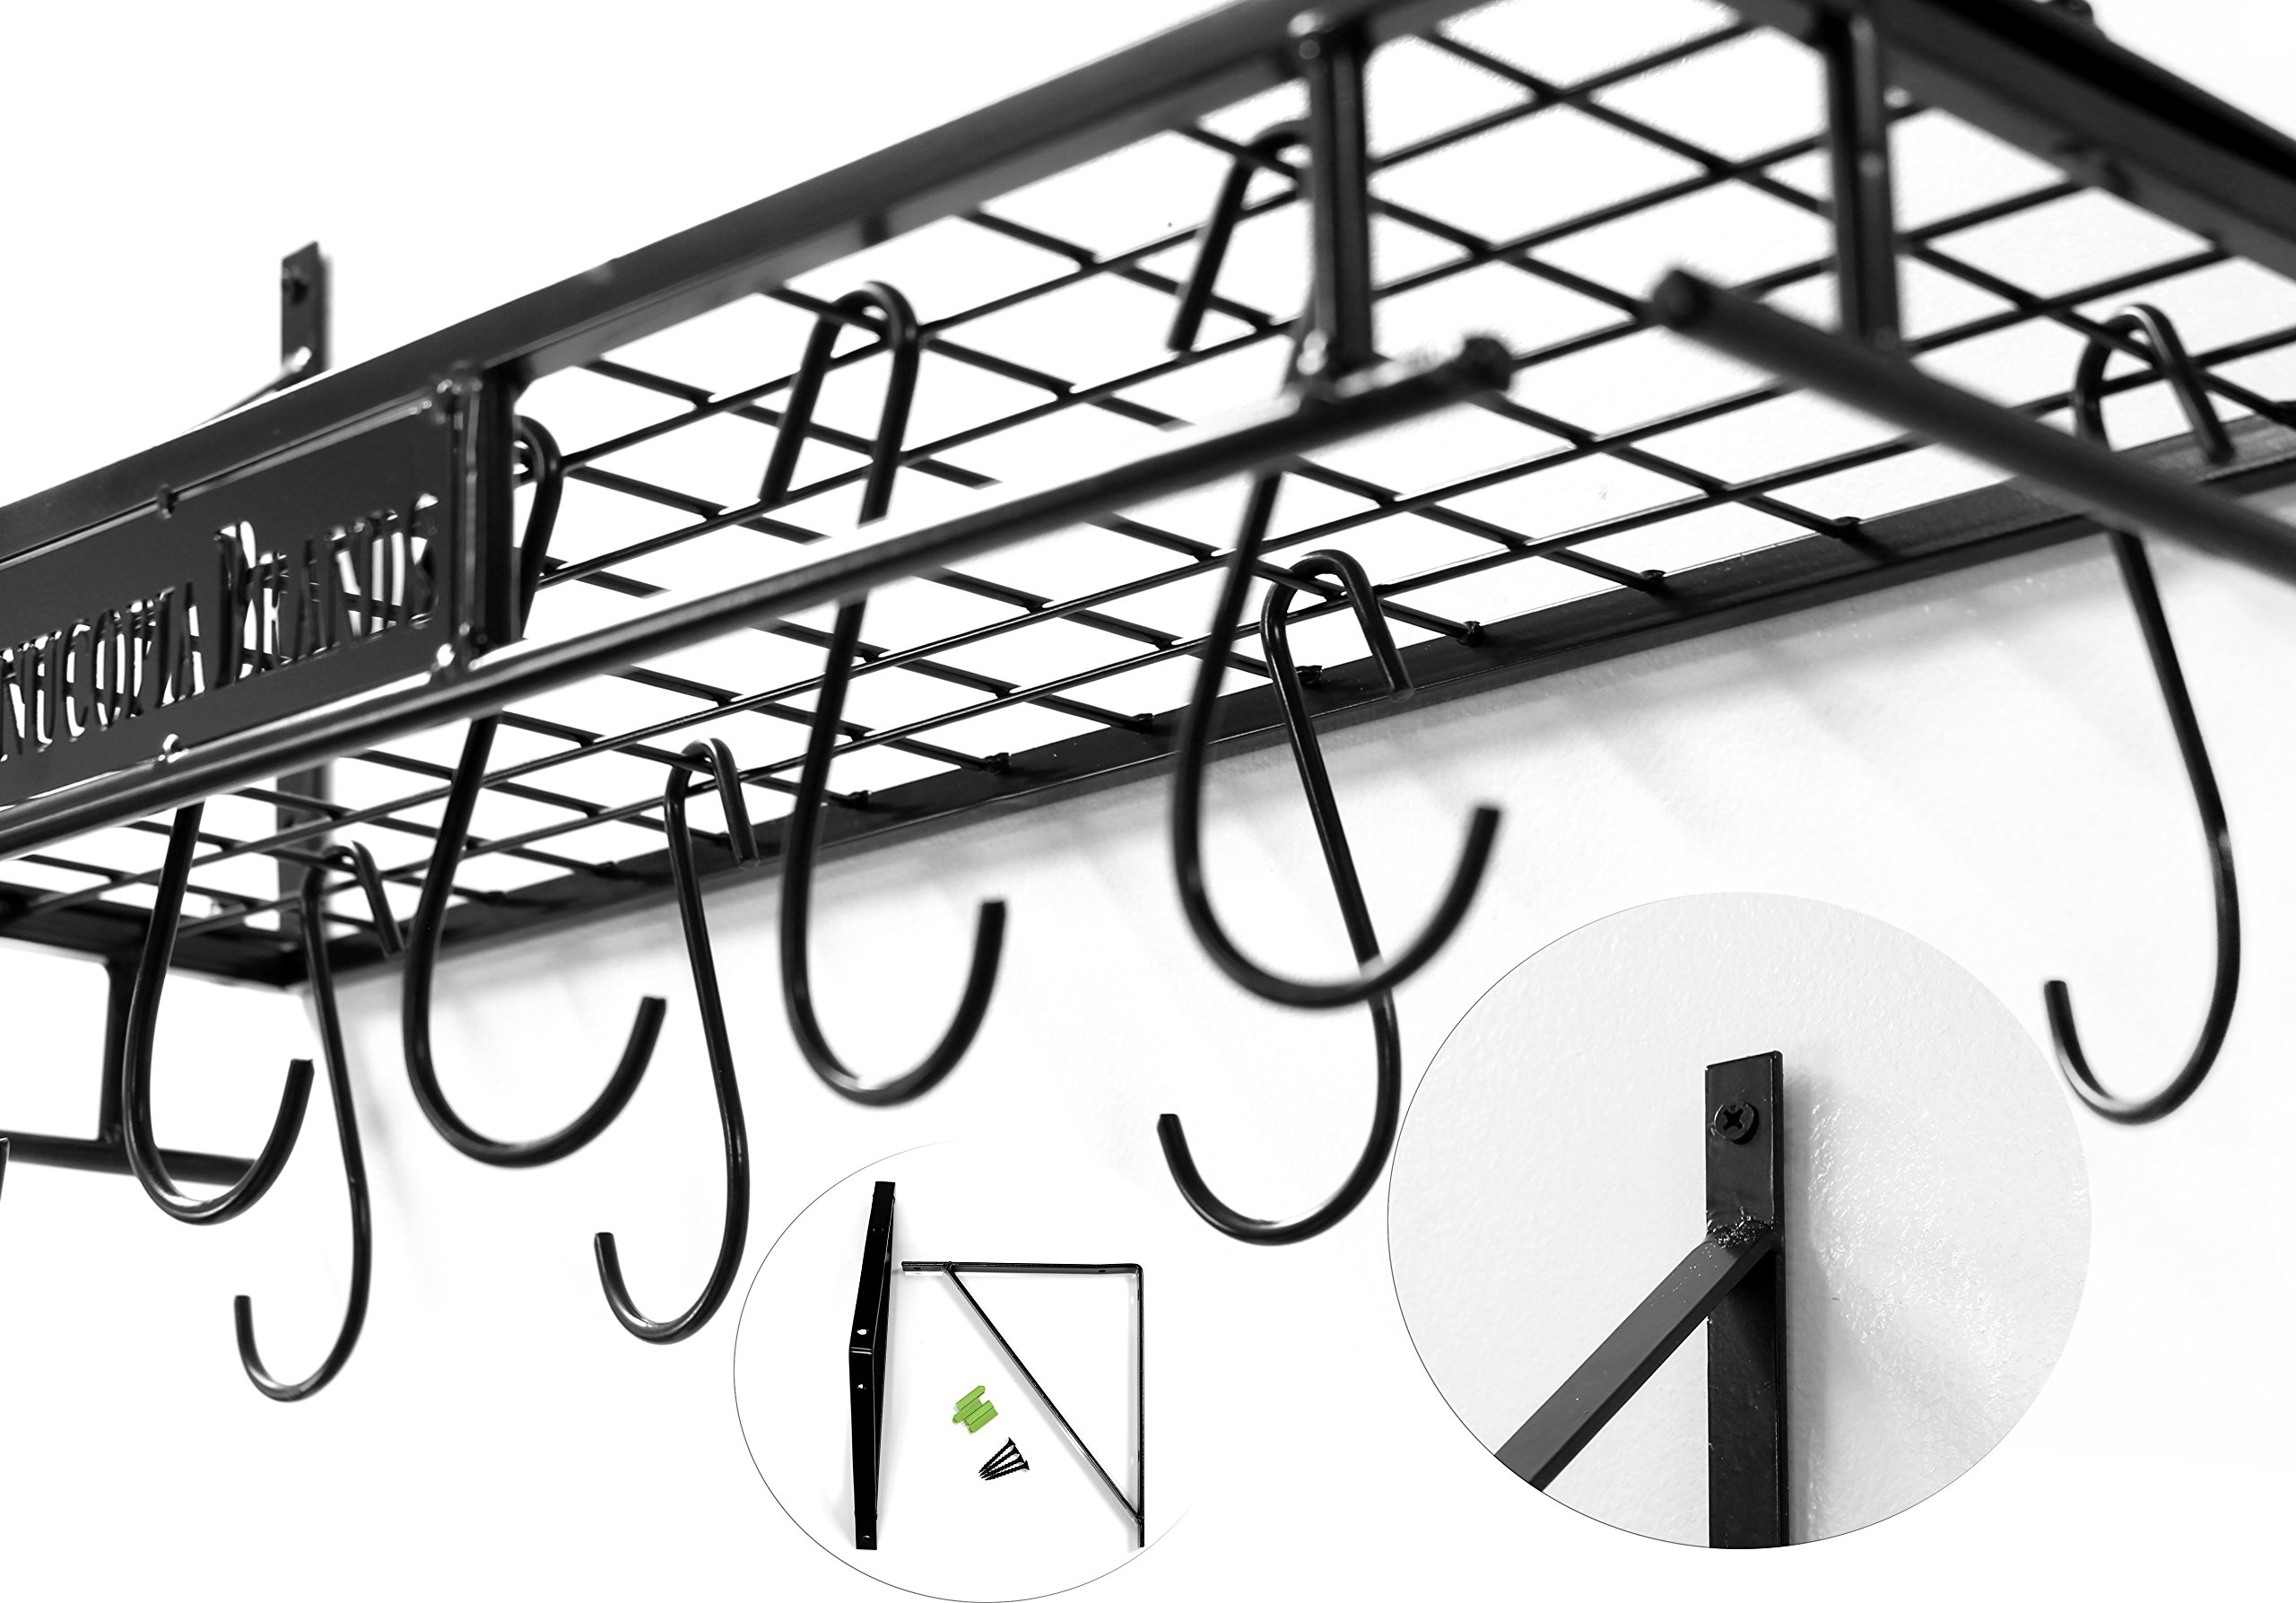 Wall-Mounted Pot Hanging Rack, 24 by 10 Inches, All-Black Decorative Kitchen Shelf w/ 10 S-Hooks by Cornucopia Brands (Image #6)